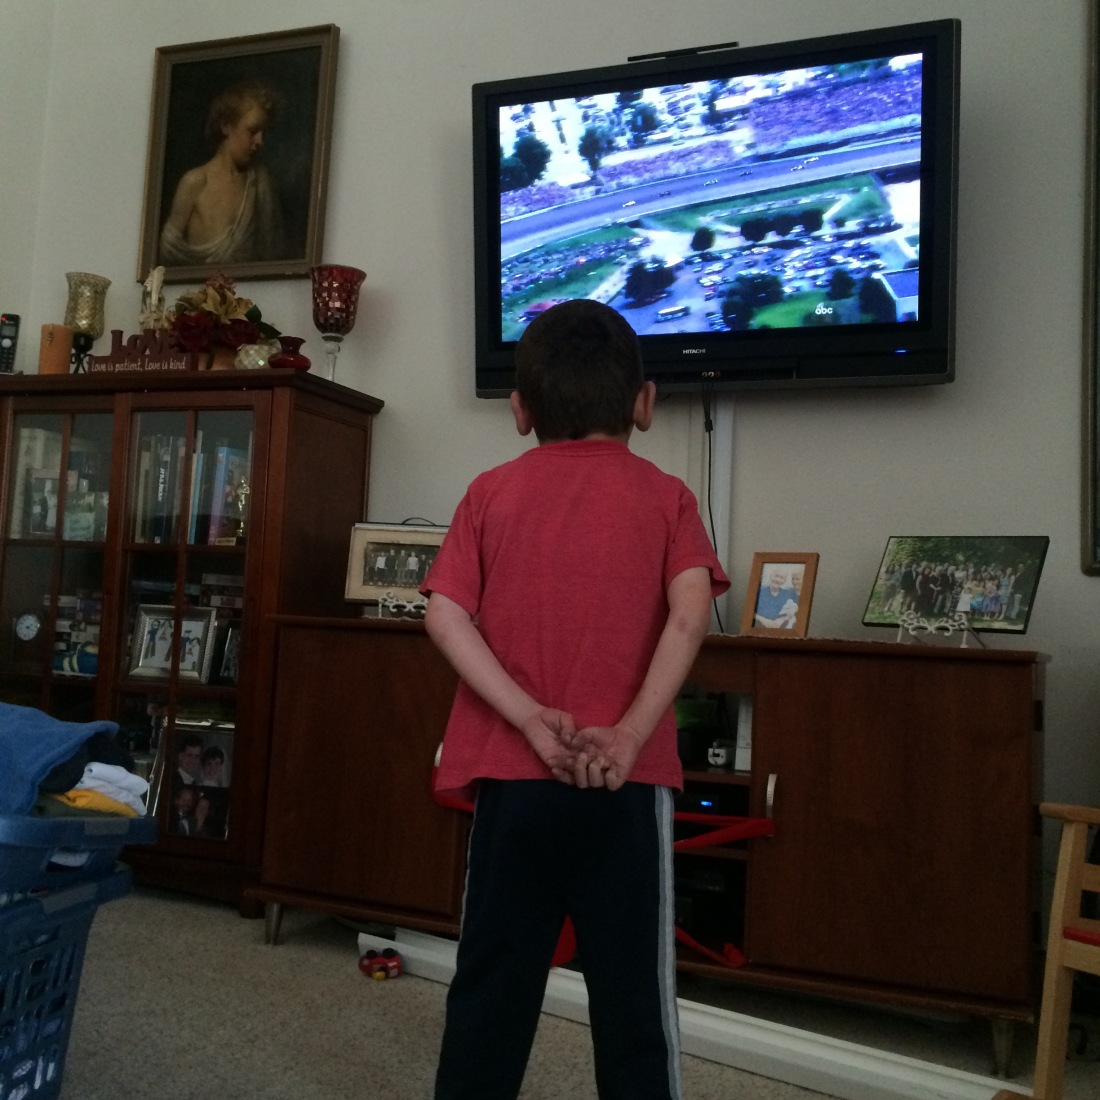 Rudy also discovered the great fun and excitement of the Indy 500...he was mesmerized!  Yay!  The tradition continues...maybe we'll take him to see the real deal someday.